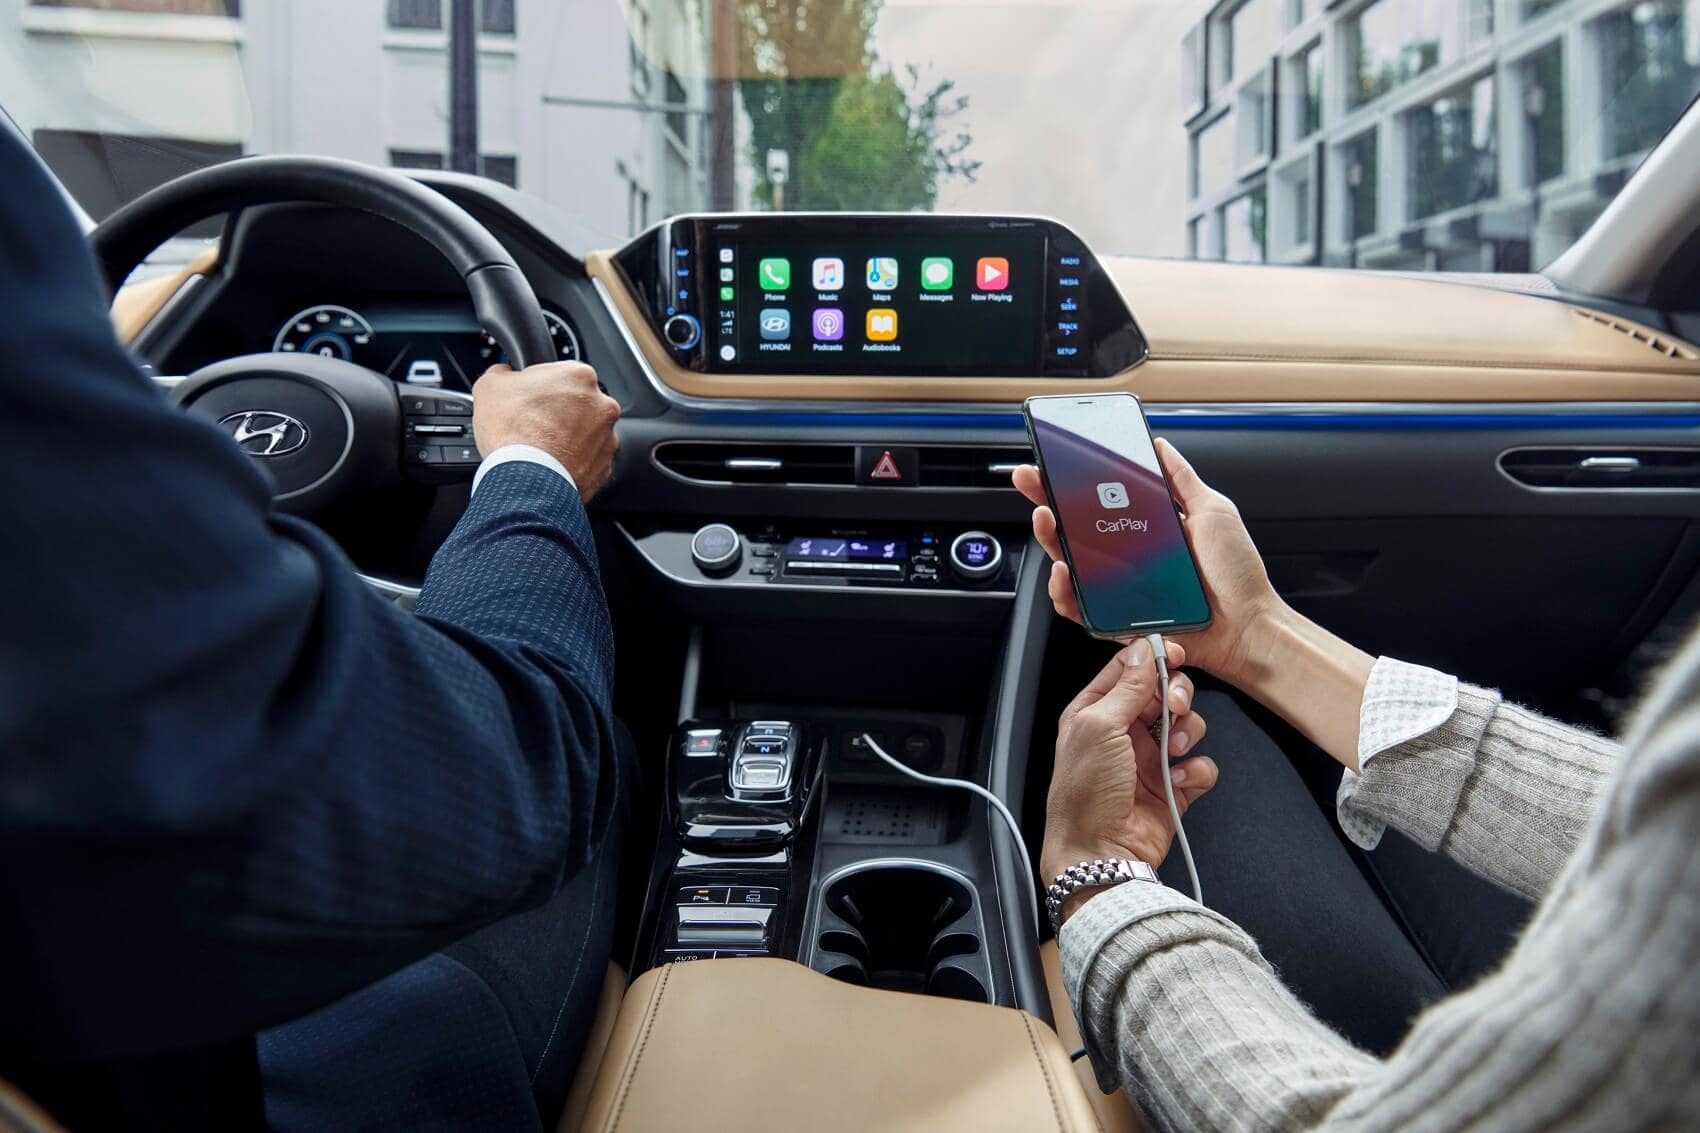 2020 Hyundai Sonata Interior with Apple CarPlay® Technology Integration